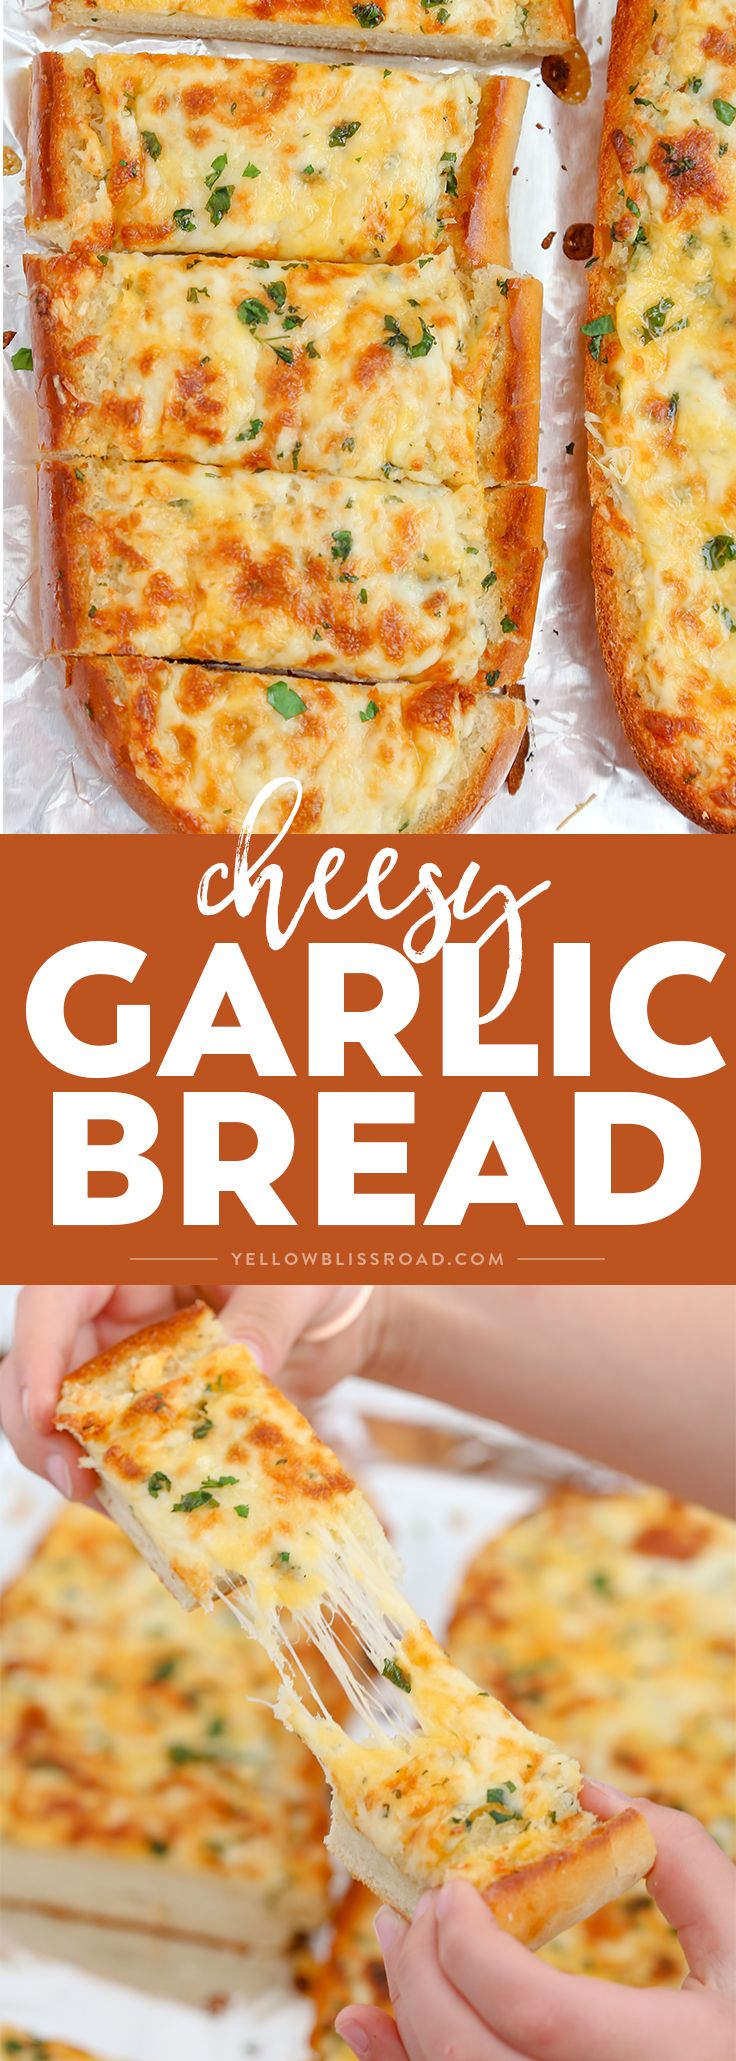 Turn plain french bread into cheesy, garlicky perfection with this epic Cheesy Garlic Bread with three kinds of cheese, herbs and tons of garlic. via @yellowblissroad